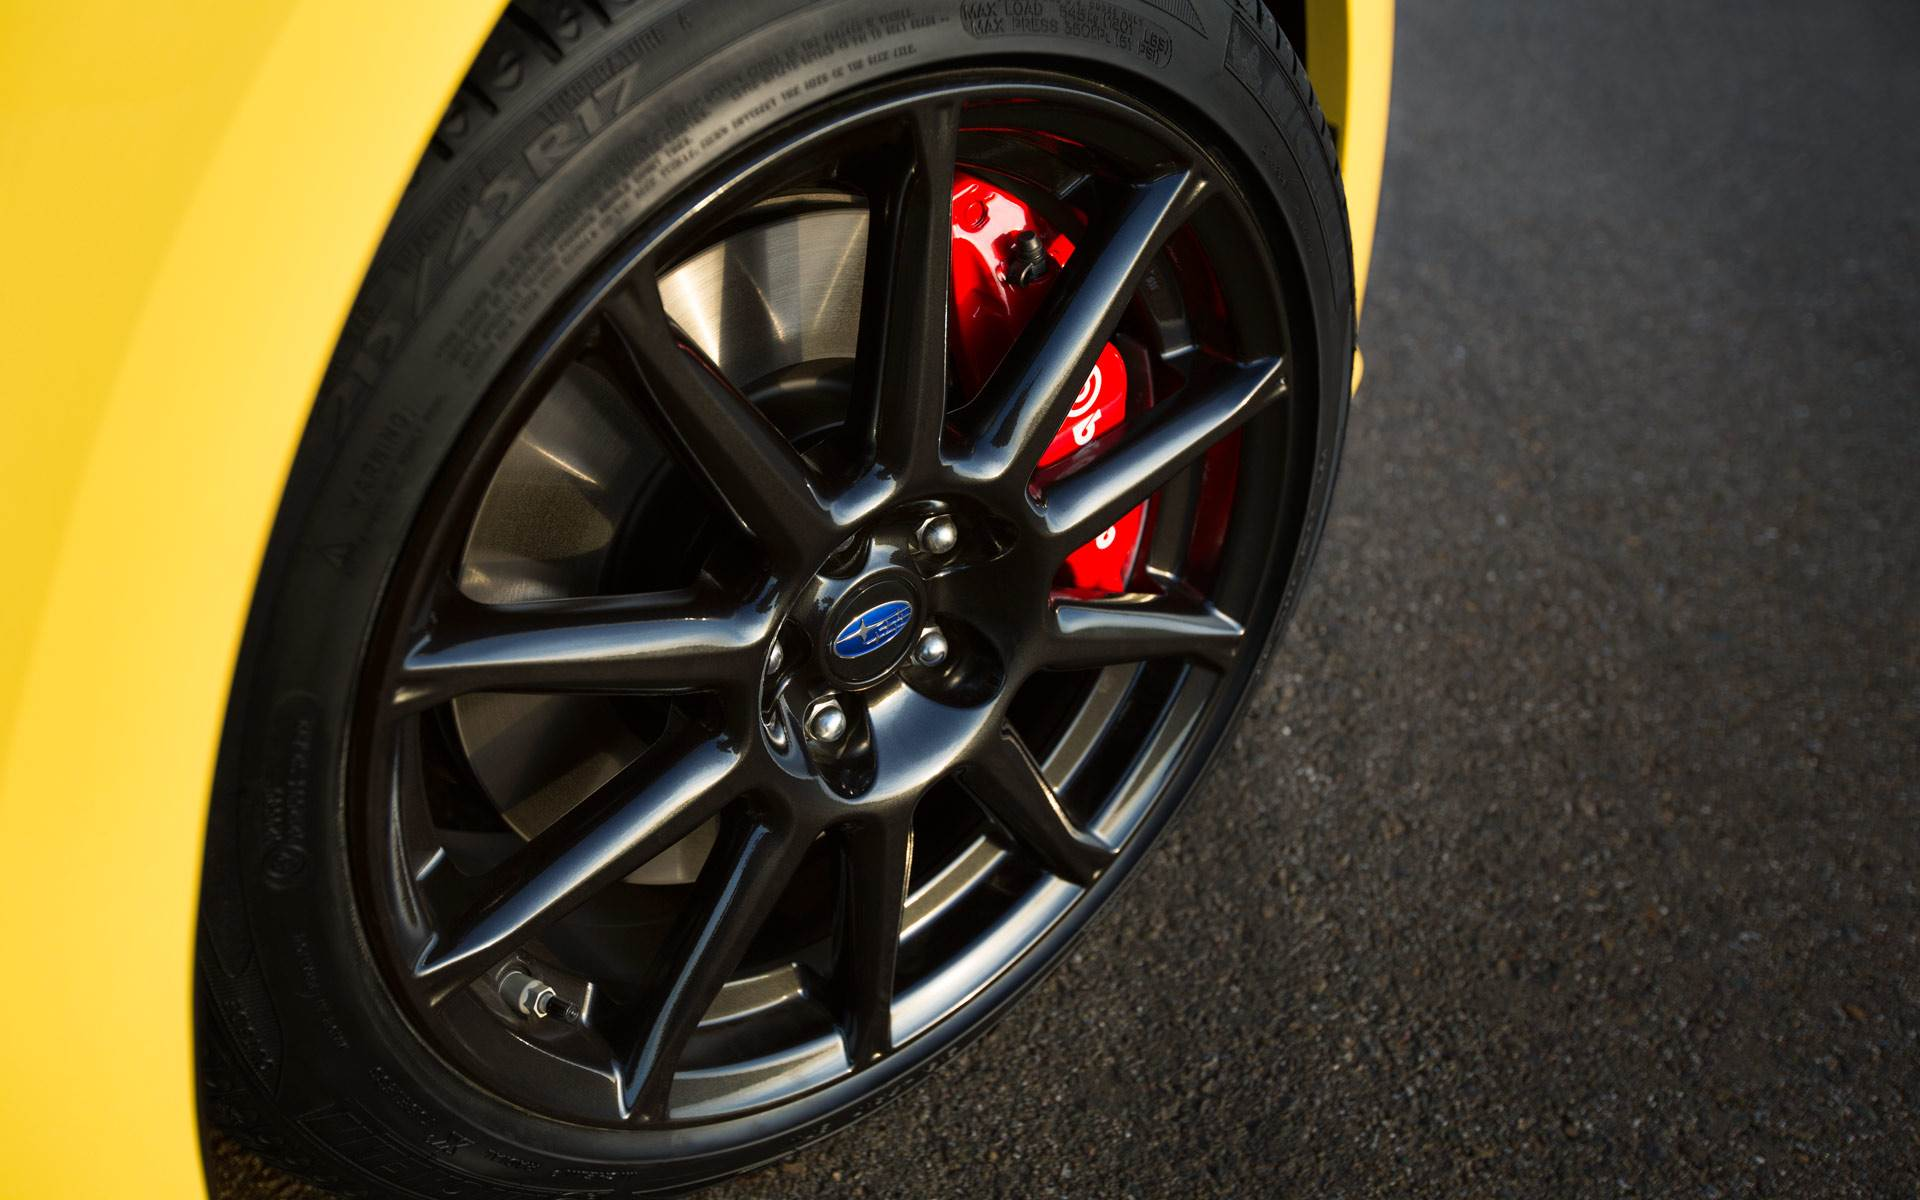 BRZ SERIES.YELLOW brembo製ブレーキ